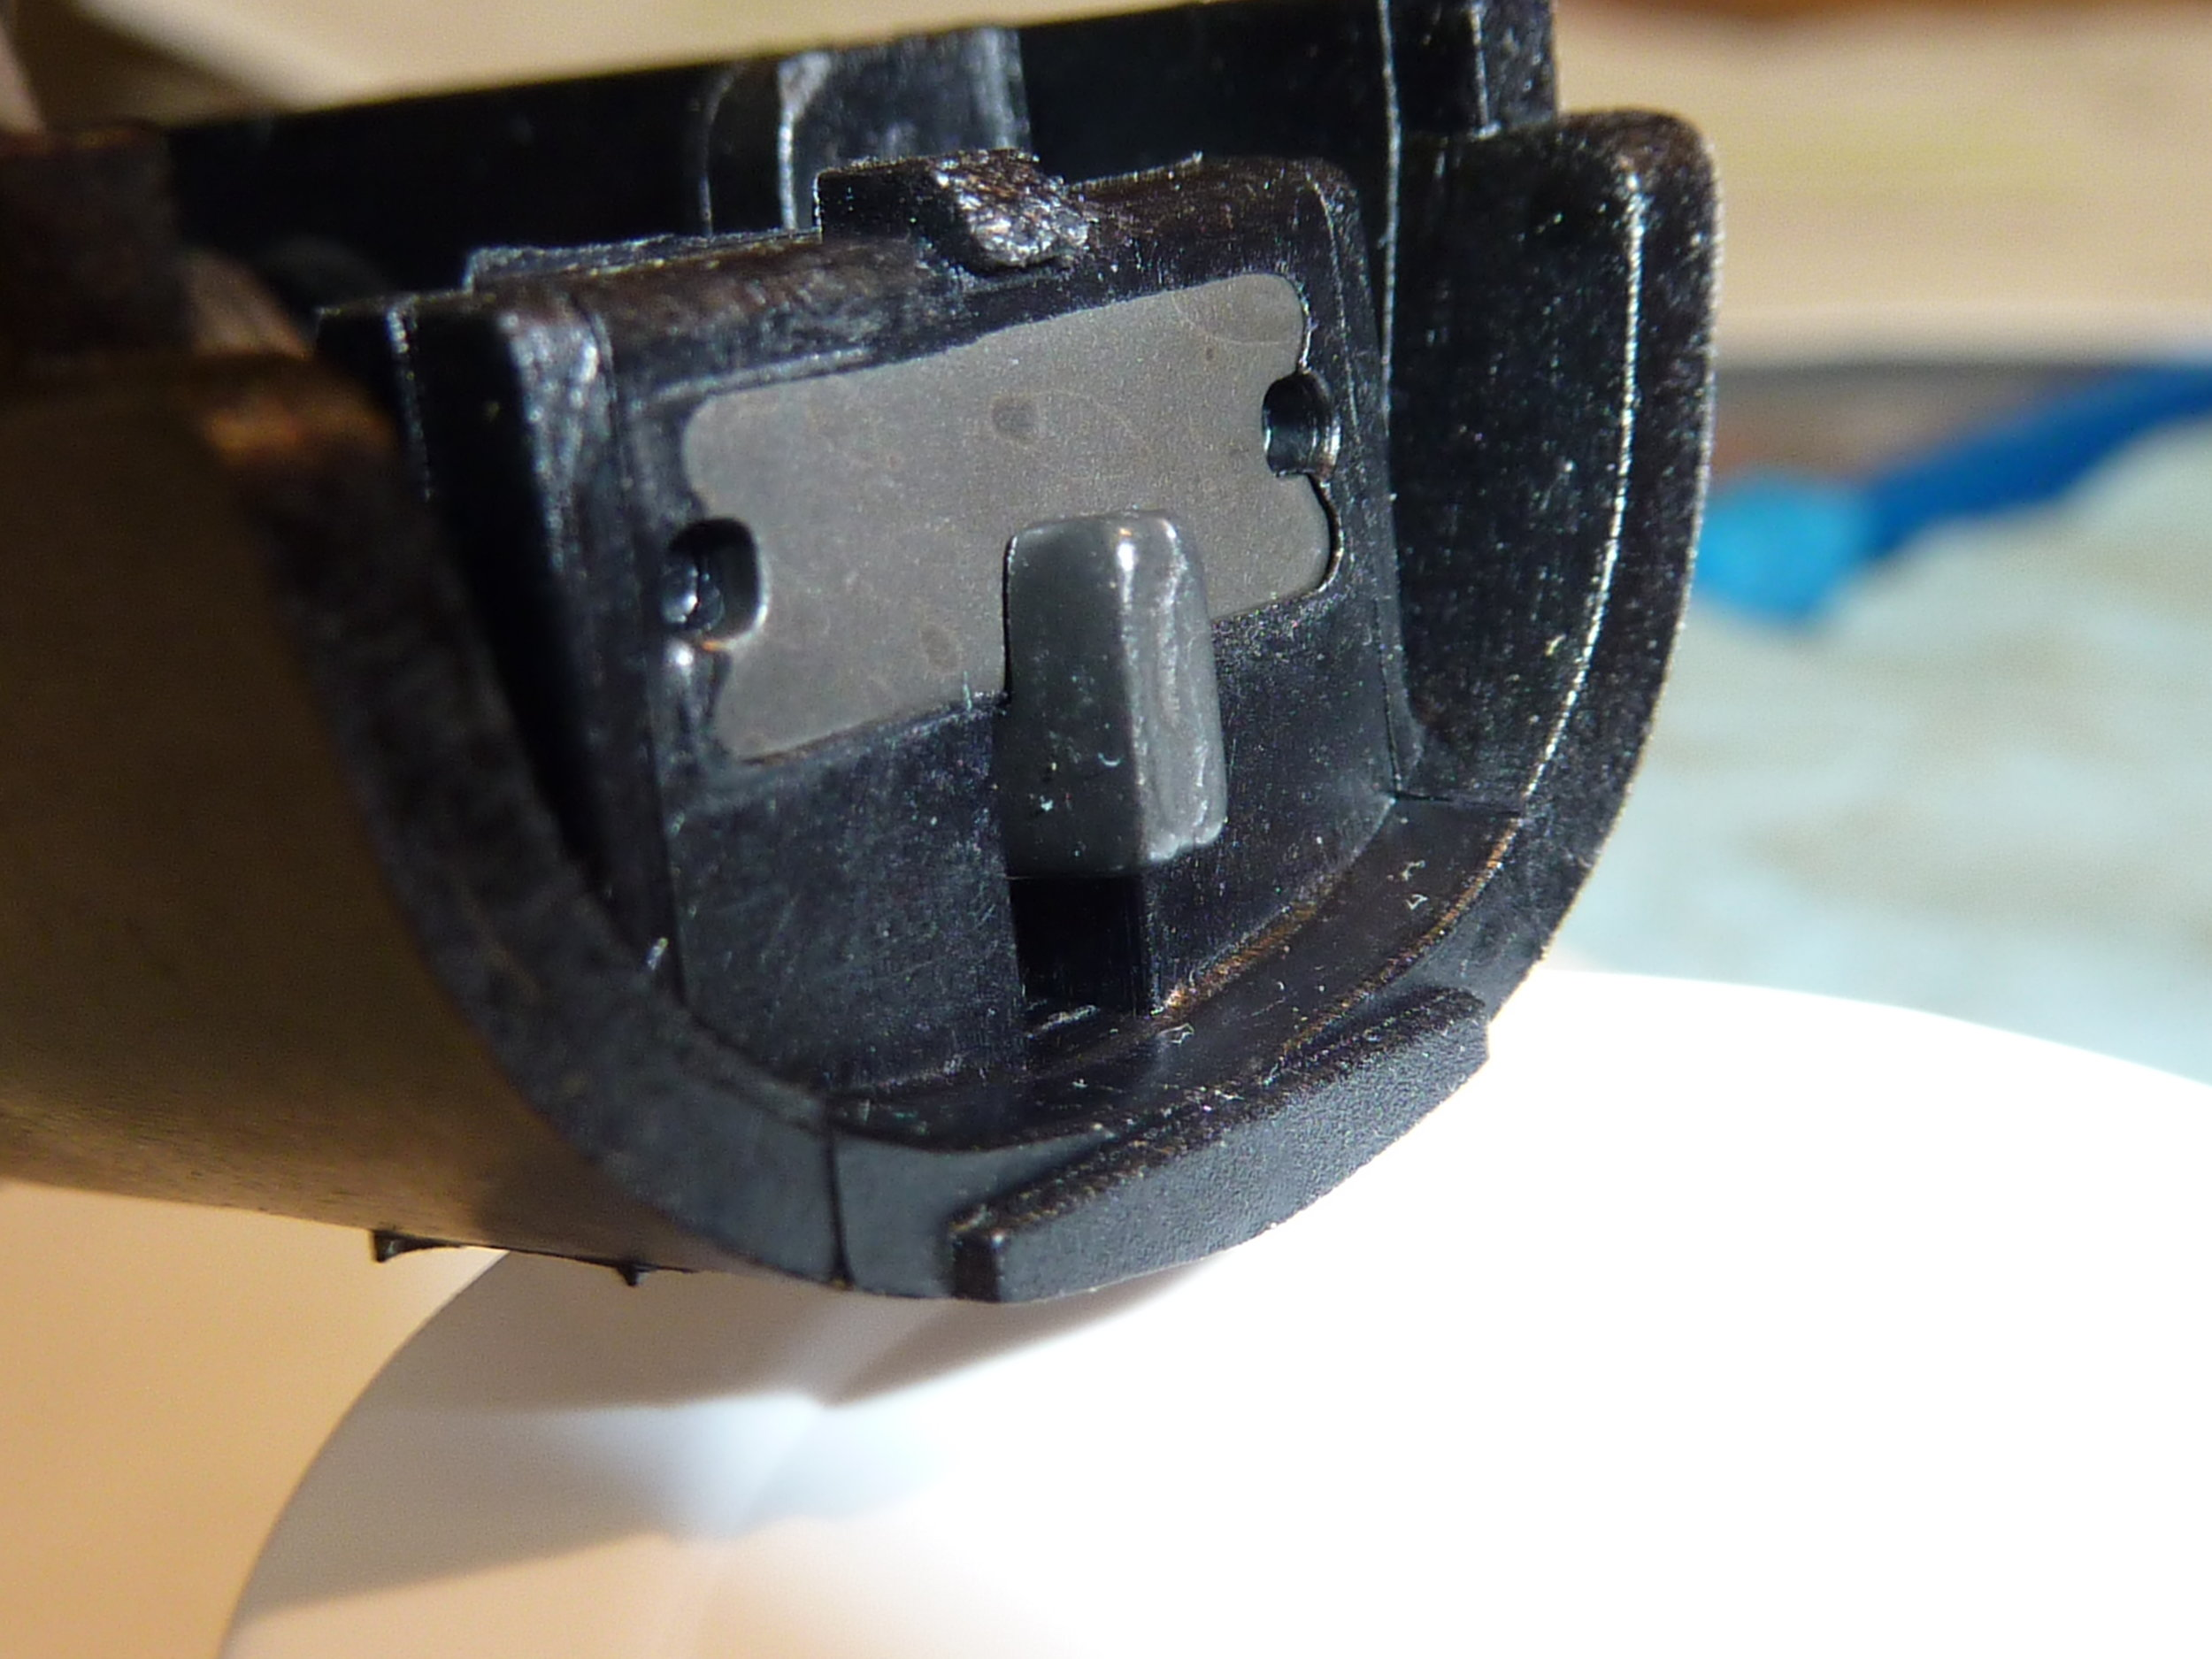 Note that the little hook is in the fully engaged position. Now, screw in the trigger adjustment screw until it starts to contact the trigger housing body. This will take a little movement initially since the screw was deliberately pre-set to provide clearance between the screw and the housing to ease assembly (see above). As the screw contacts the trigger housing body the little hook will start to move down in its slot. Stop screw adjustment when the top of the hook is level with the bottom of the metal plate, as below.